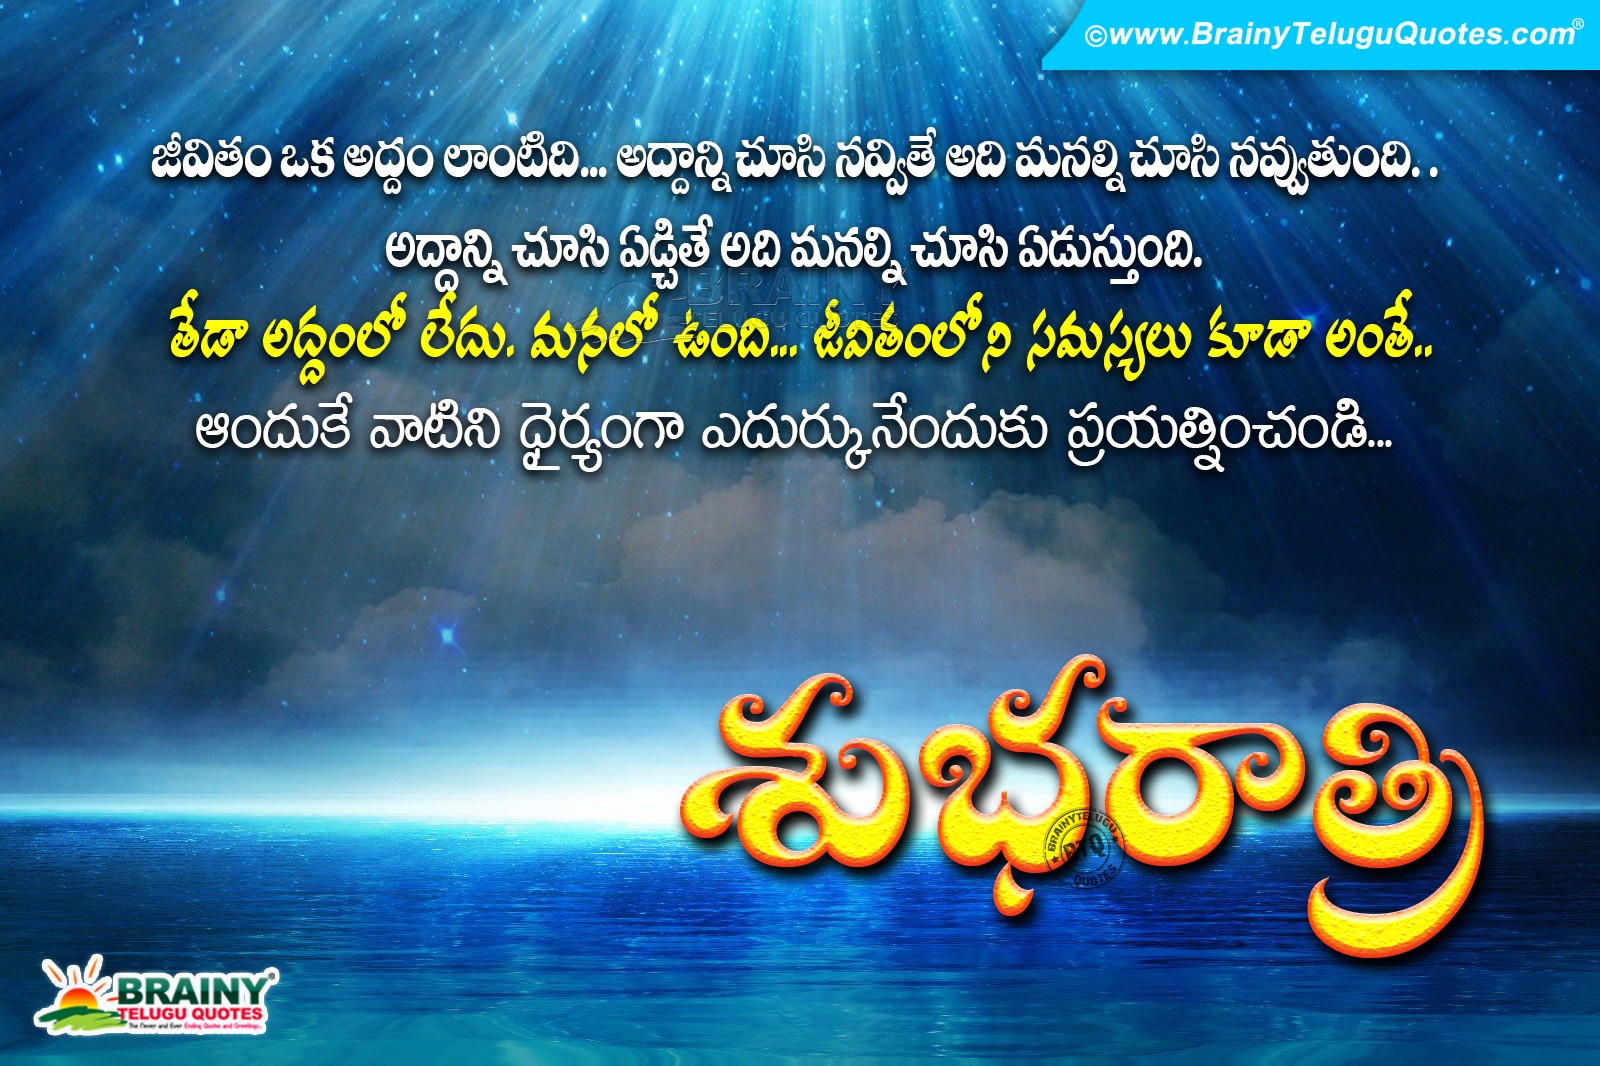 Good Night Motivational Quotes In English: Telugu Good Inspirational Quotes Hd Wallpapers-Self